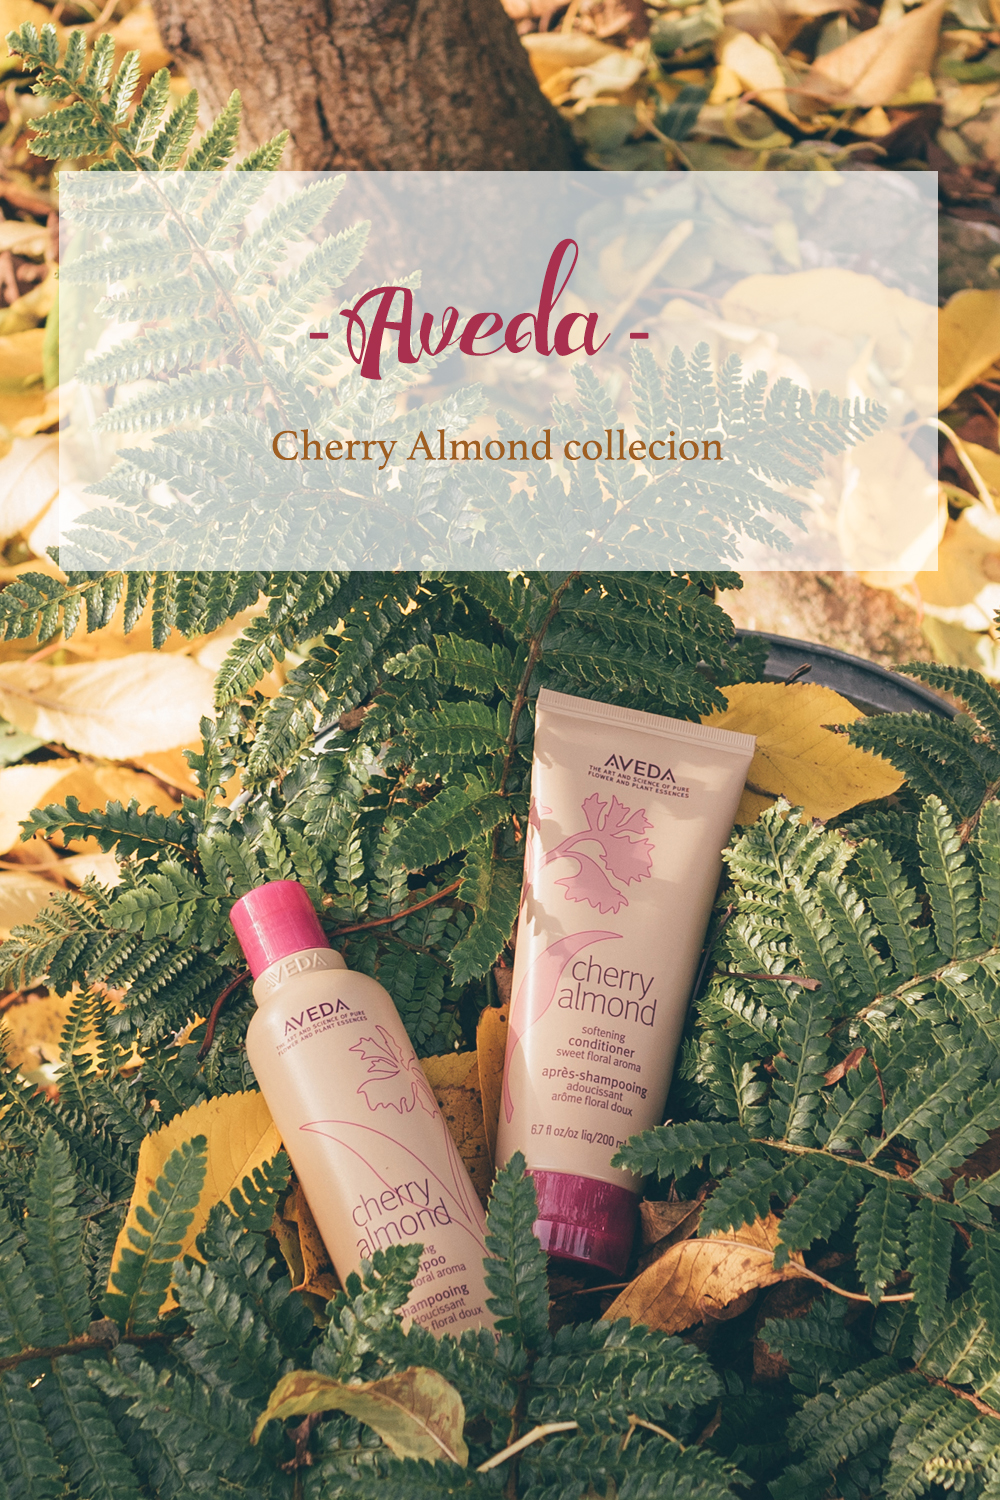 Aveda Cherry Almond